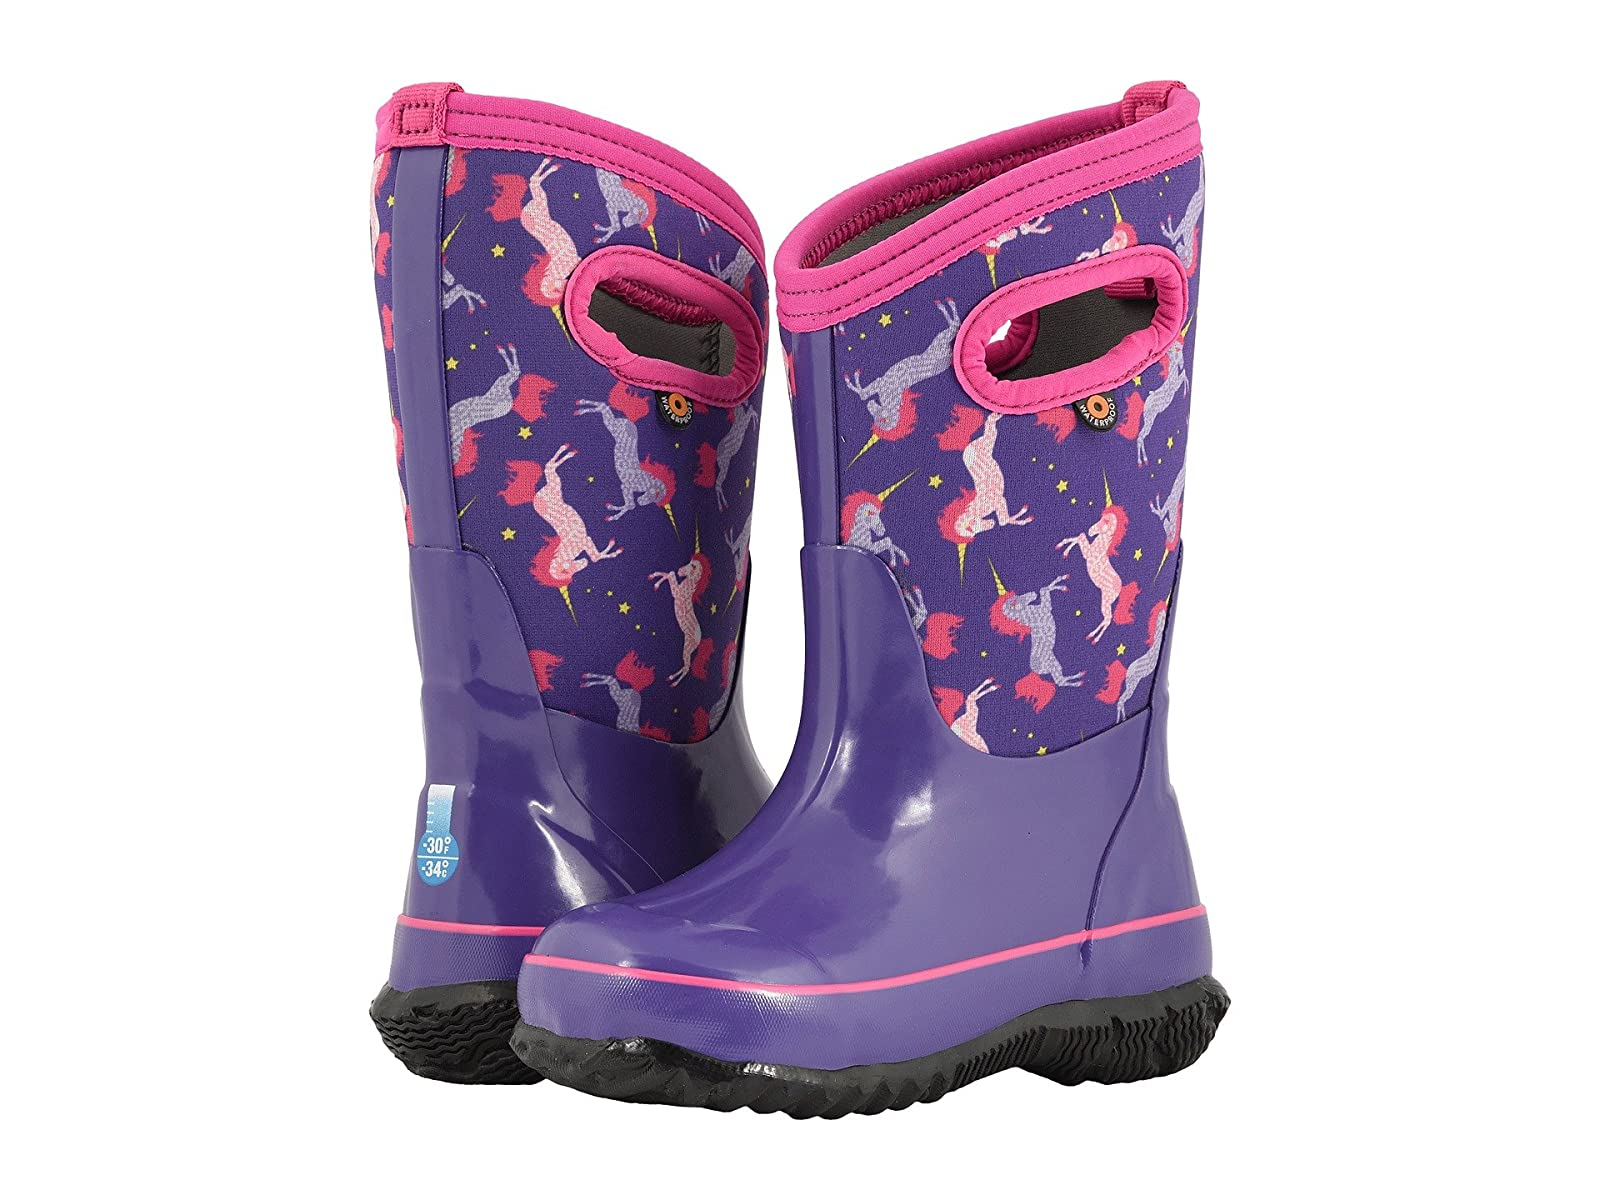 Bogs Kids Classic Unicorns (Toddler/Little Kid/Big Kid)Selling fashionable and eye-catching shoes